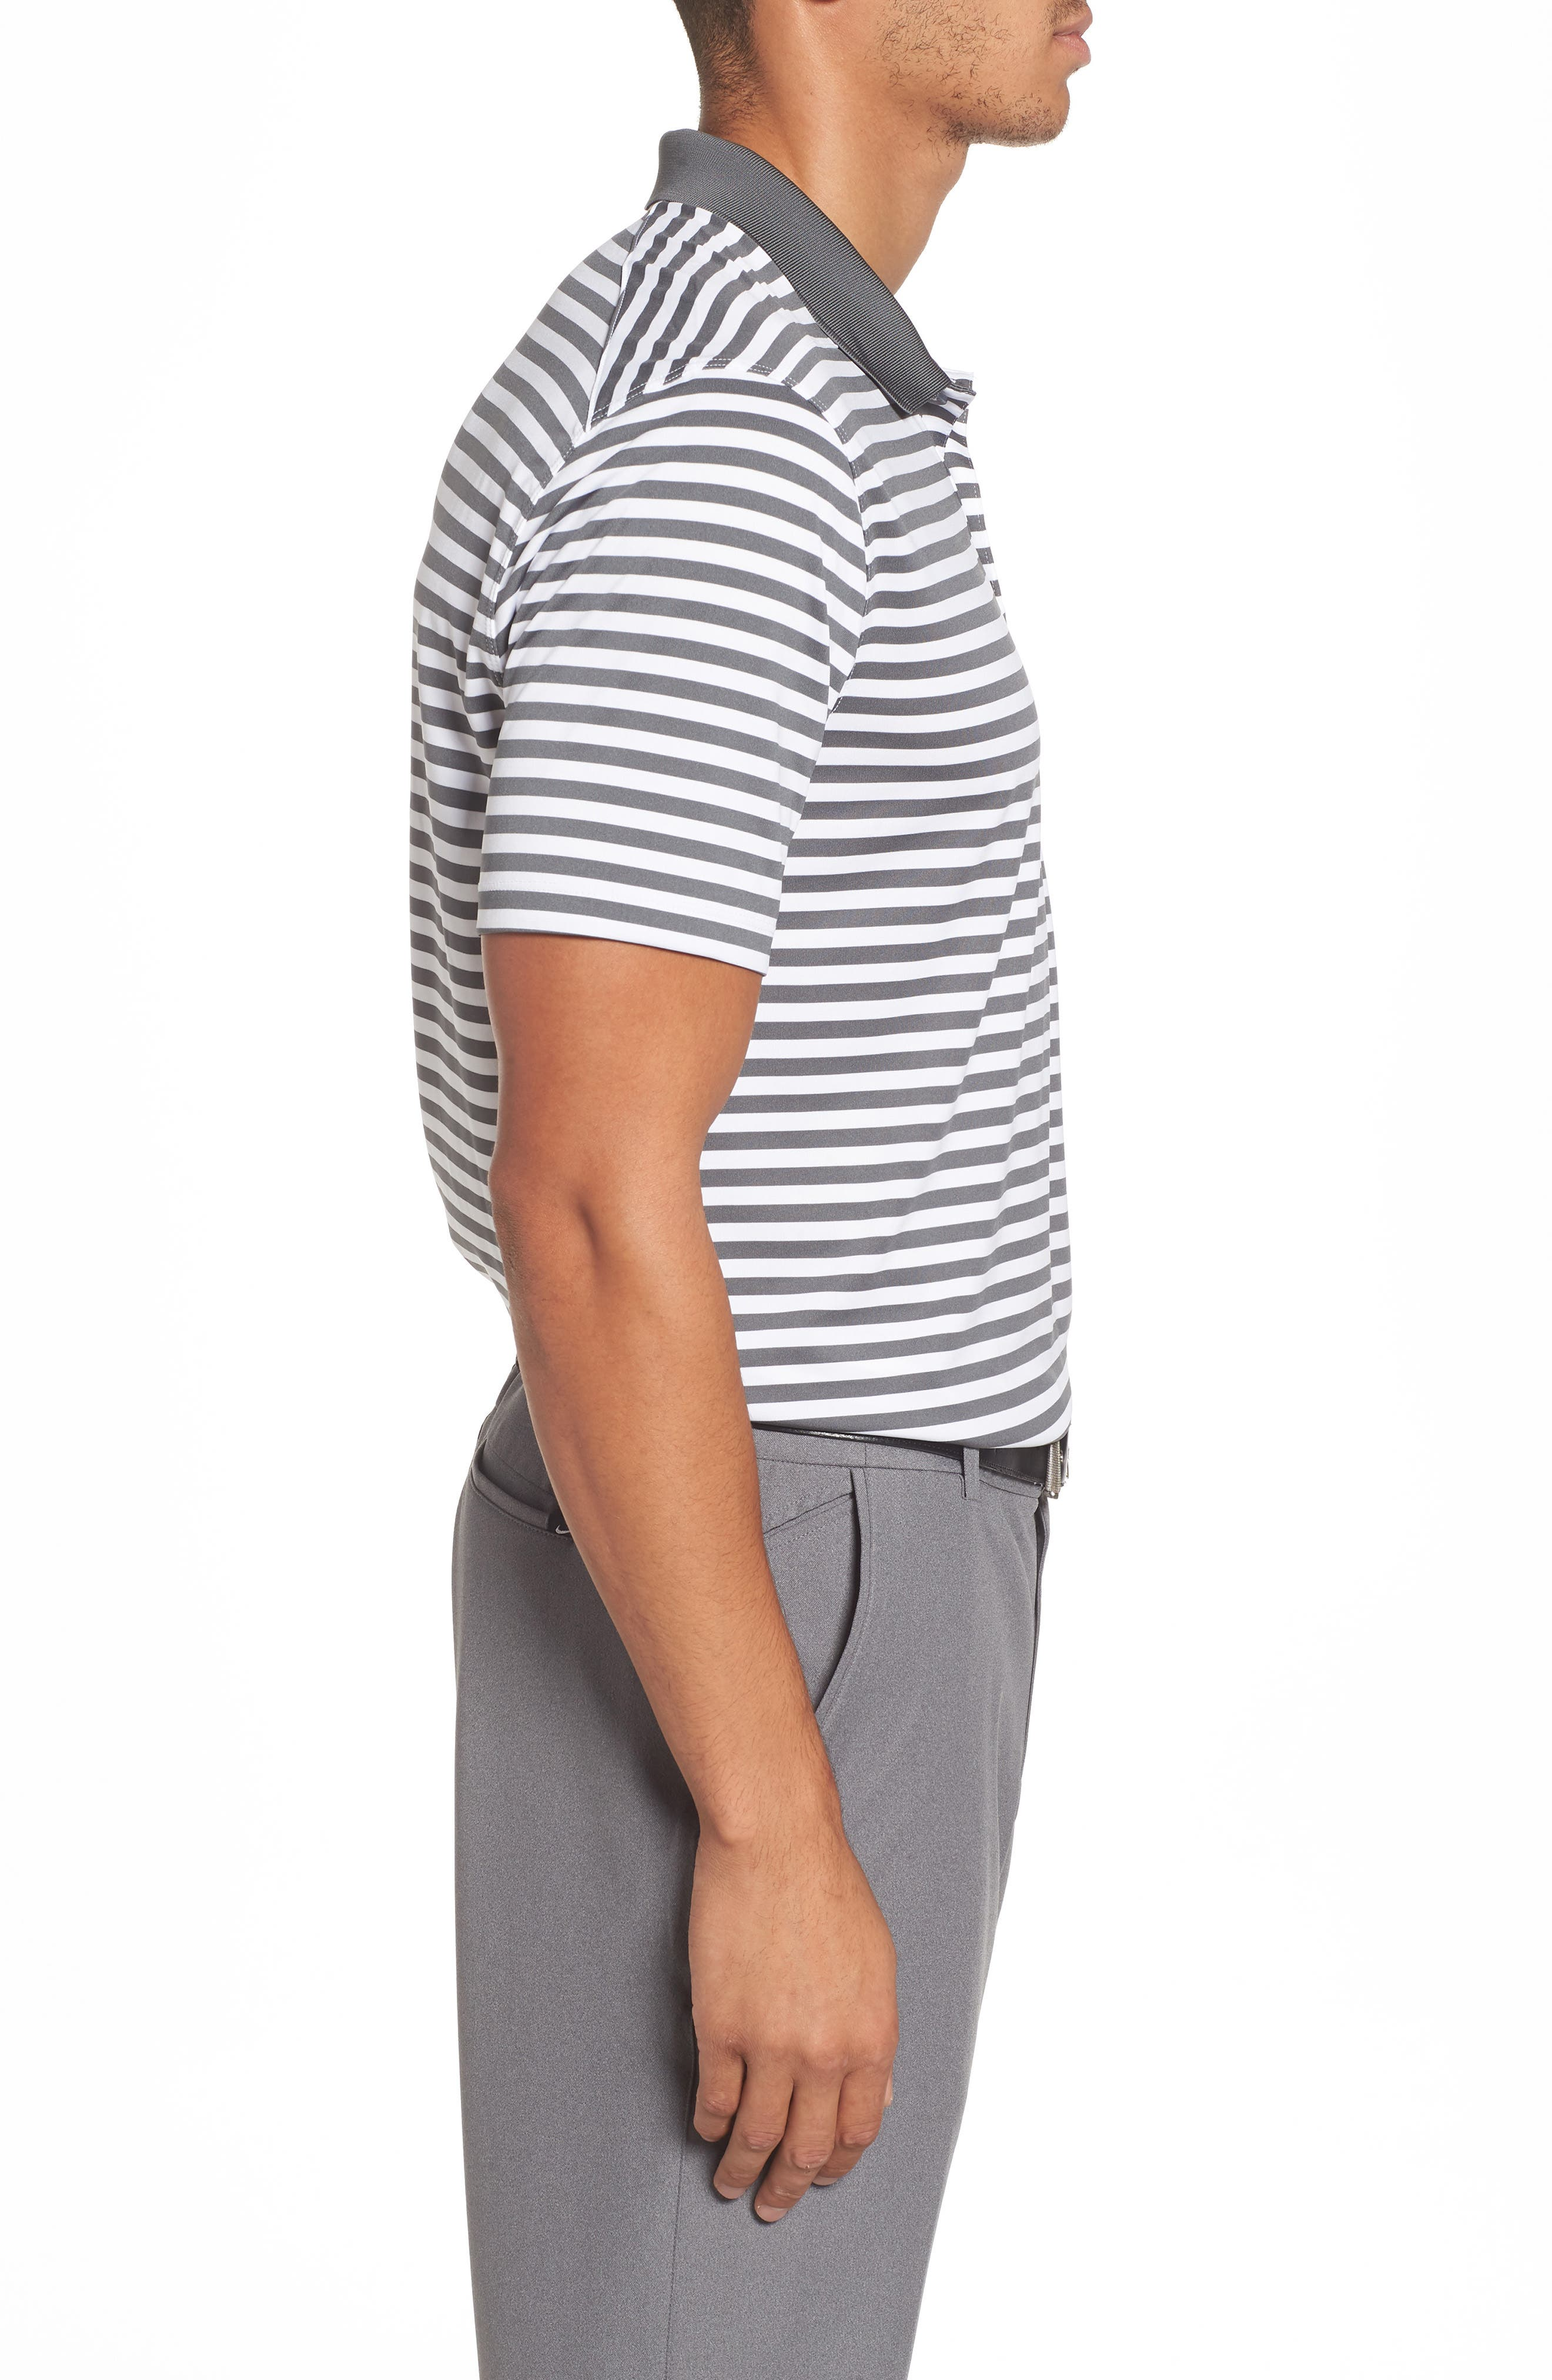 NIKE,                             Dry Victory Stripe Polo,                             Alternate thumbnail 3, color,                             021